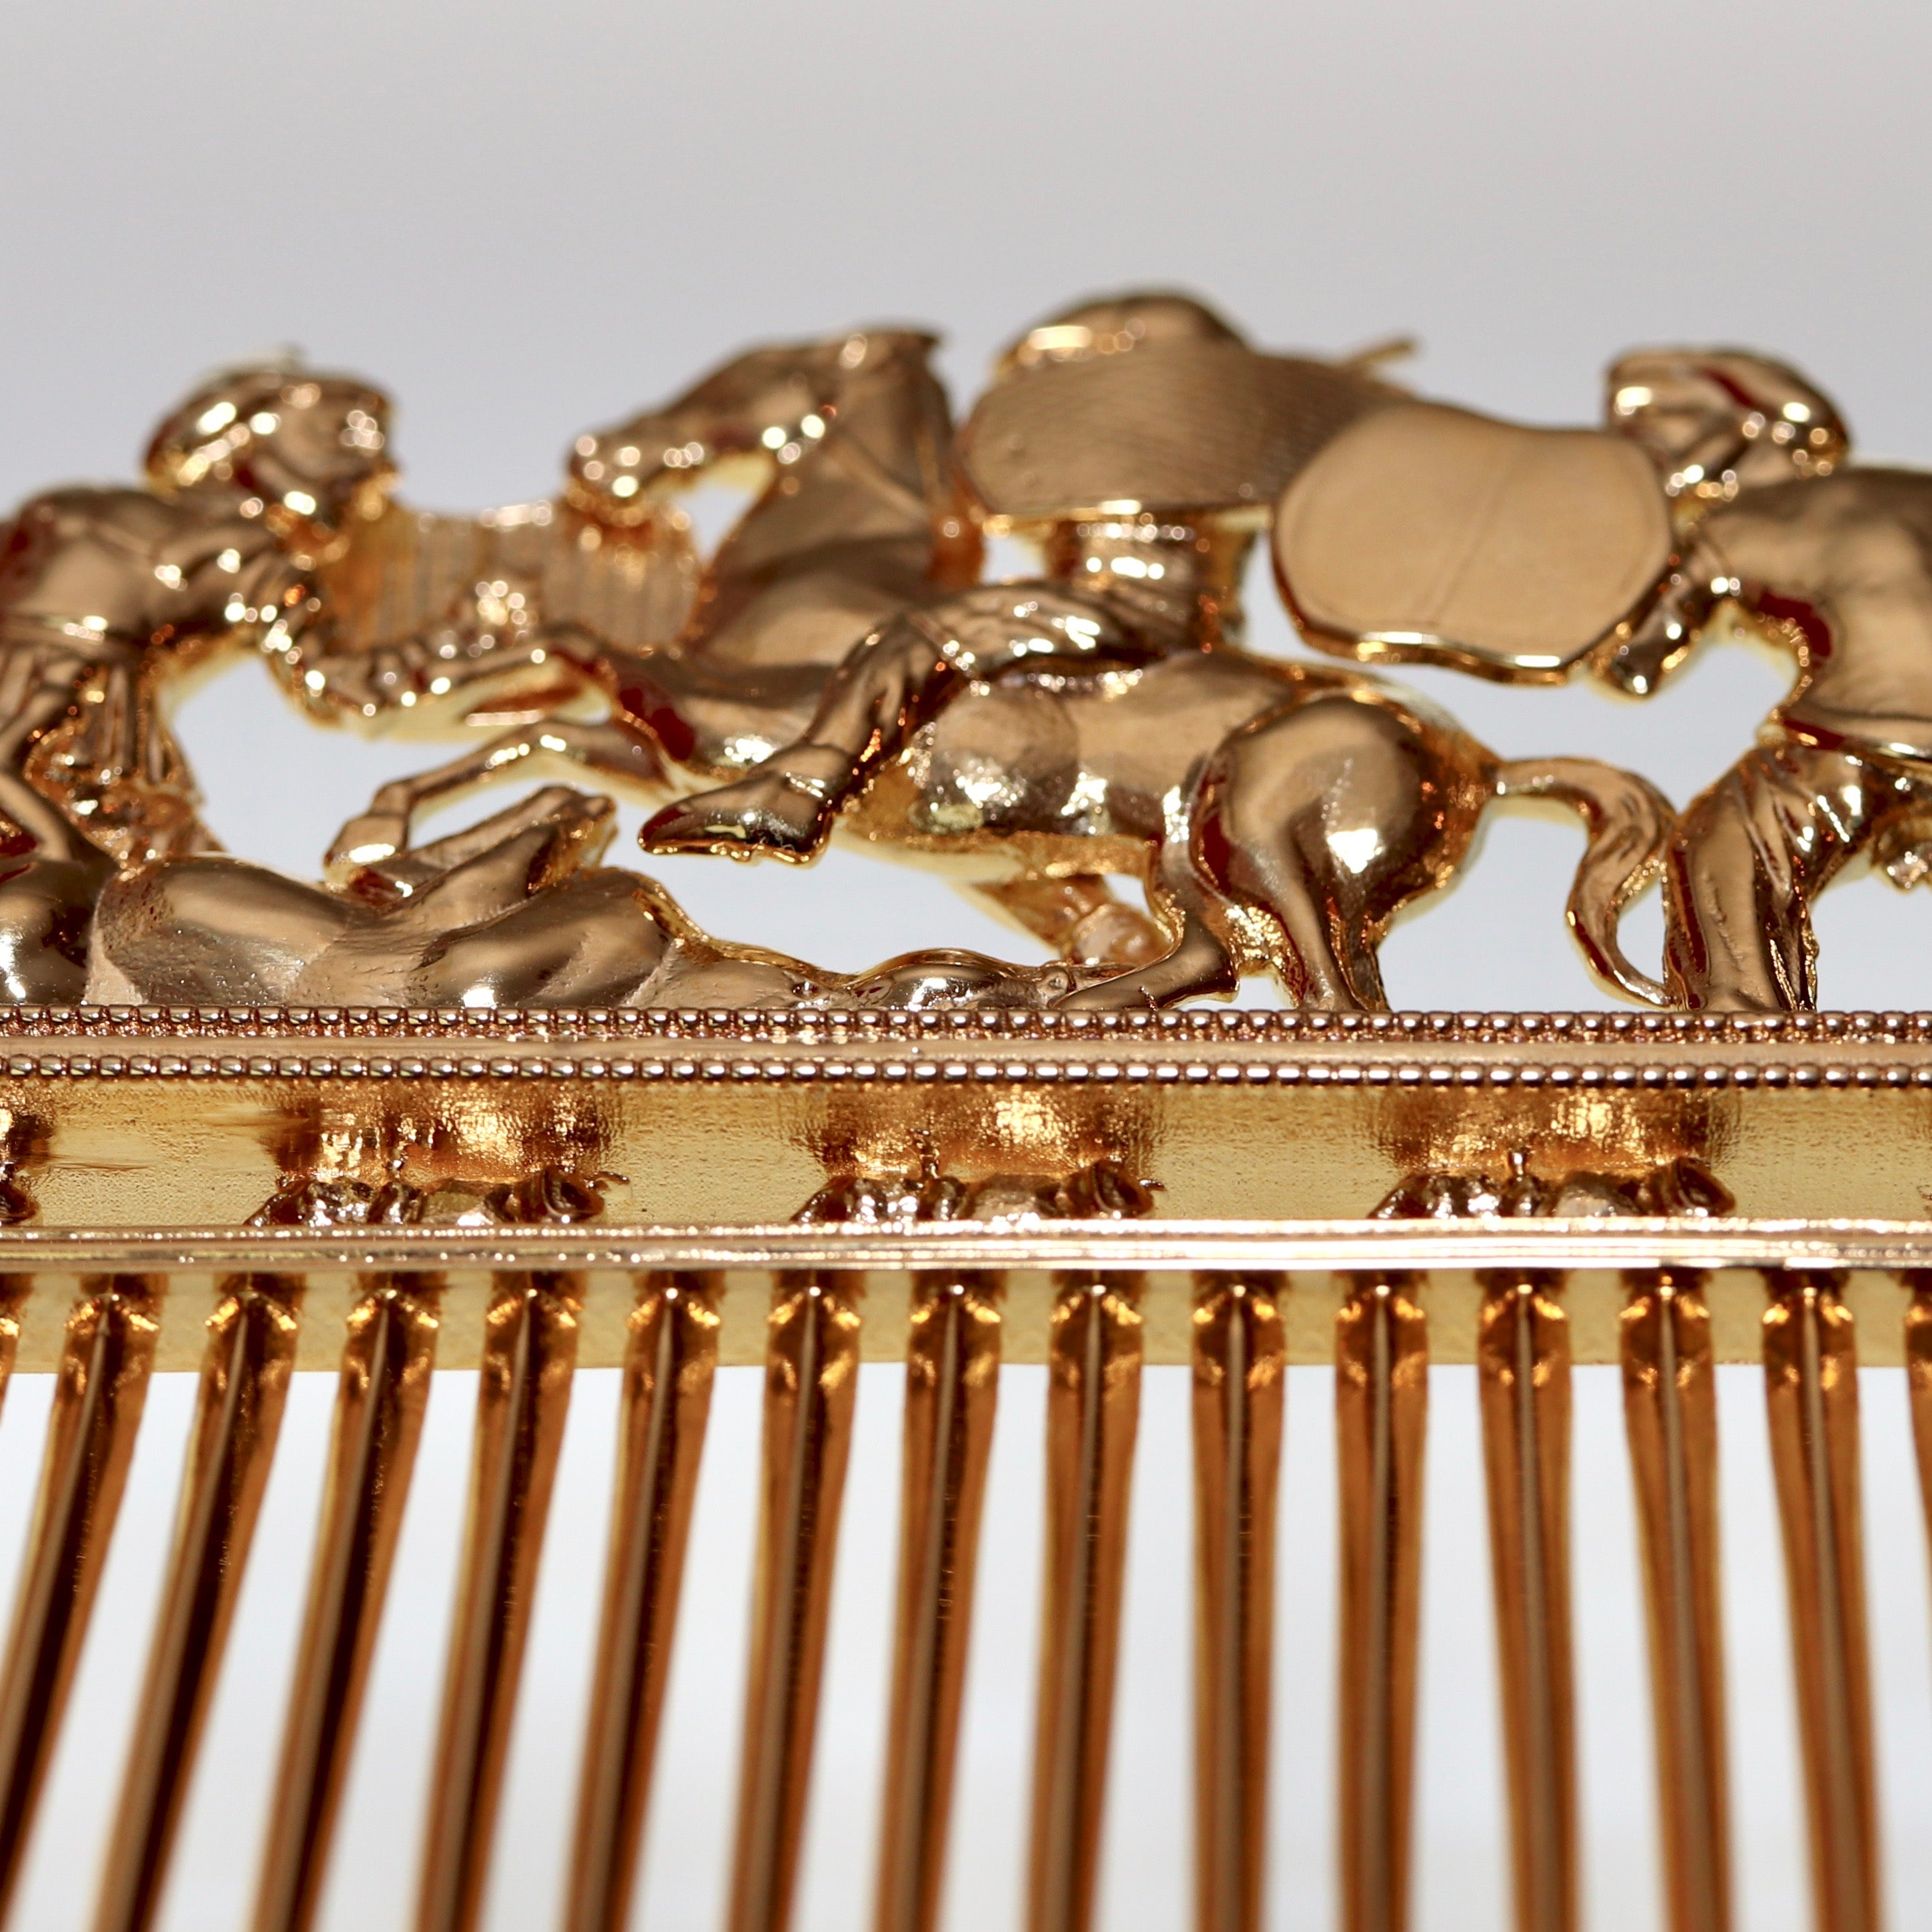 Scythian Comb - Gold-Plated